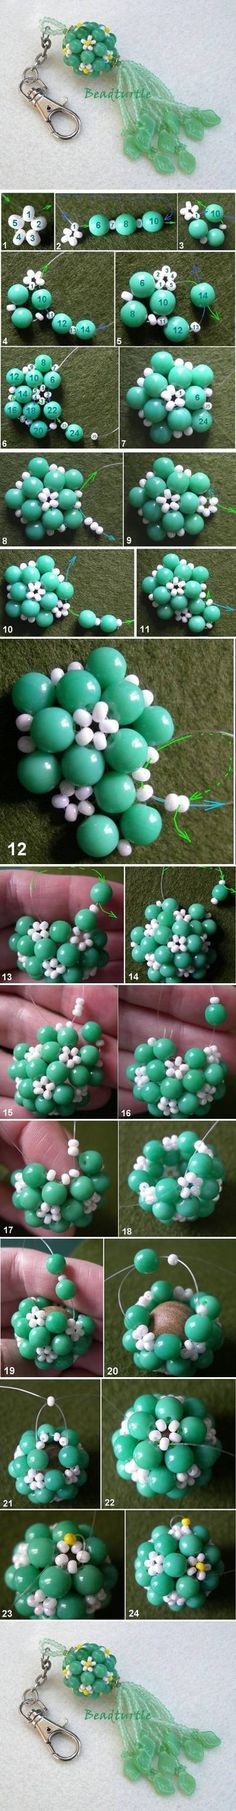 Tutorial: Key Chain Beads Charm